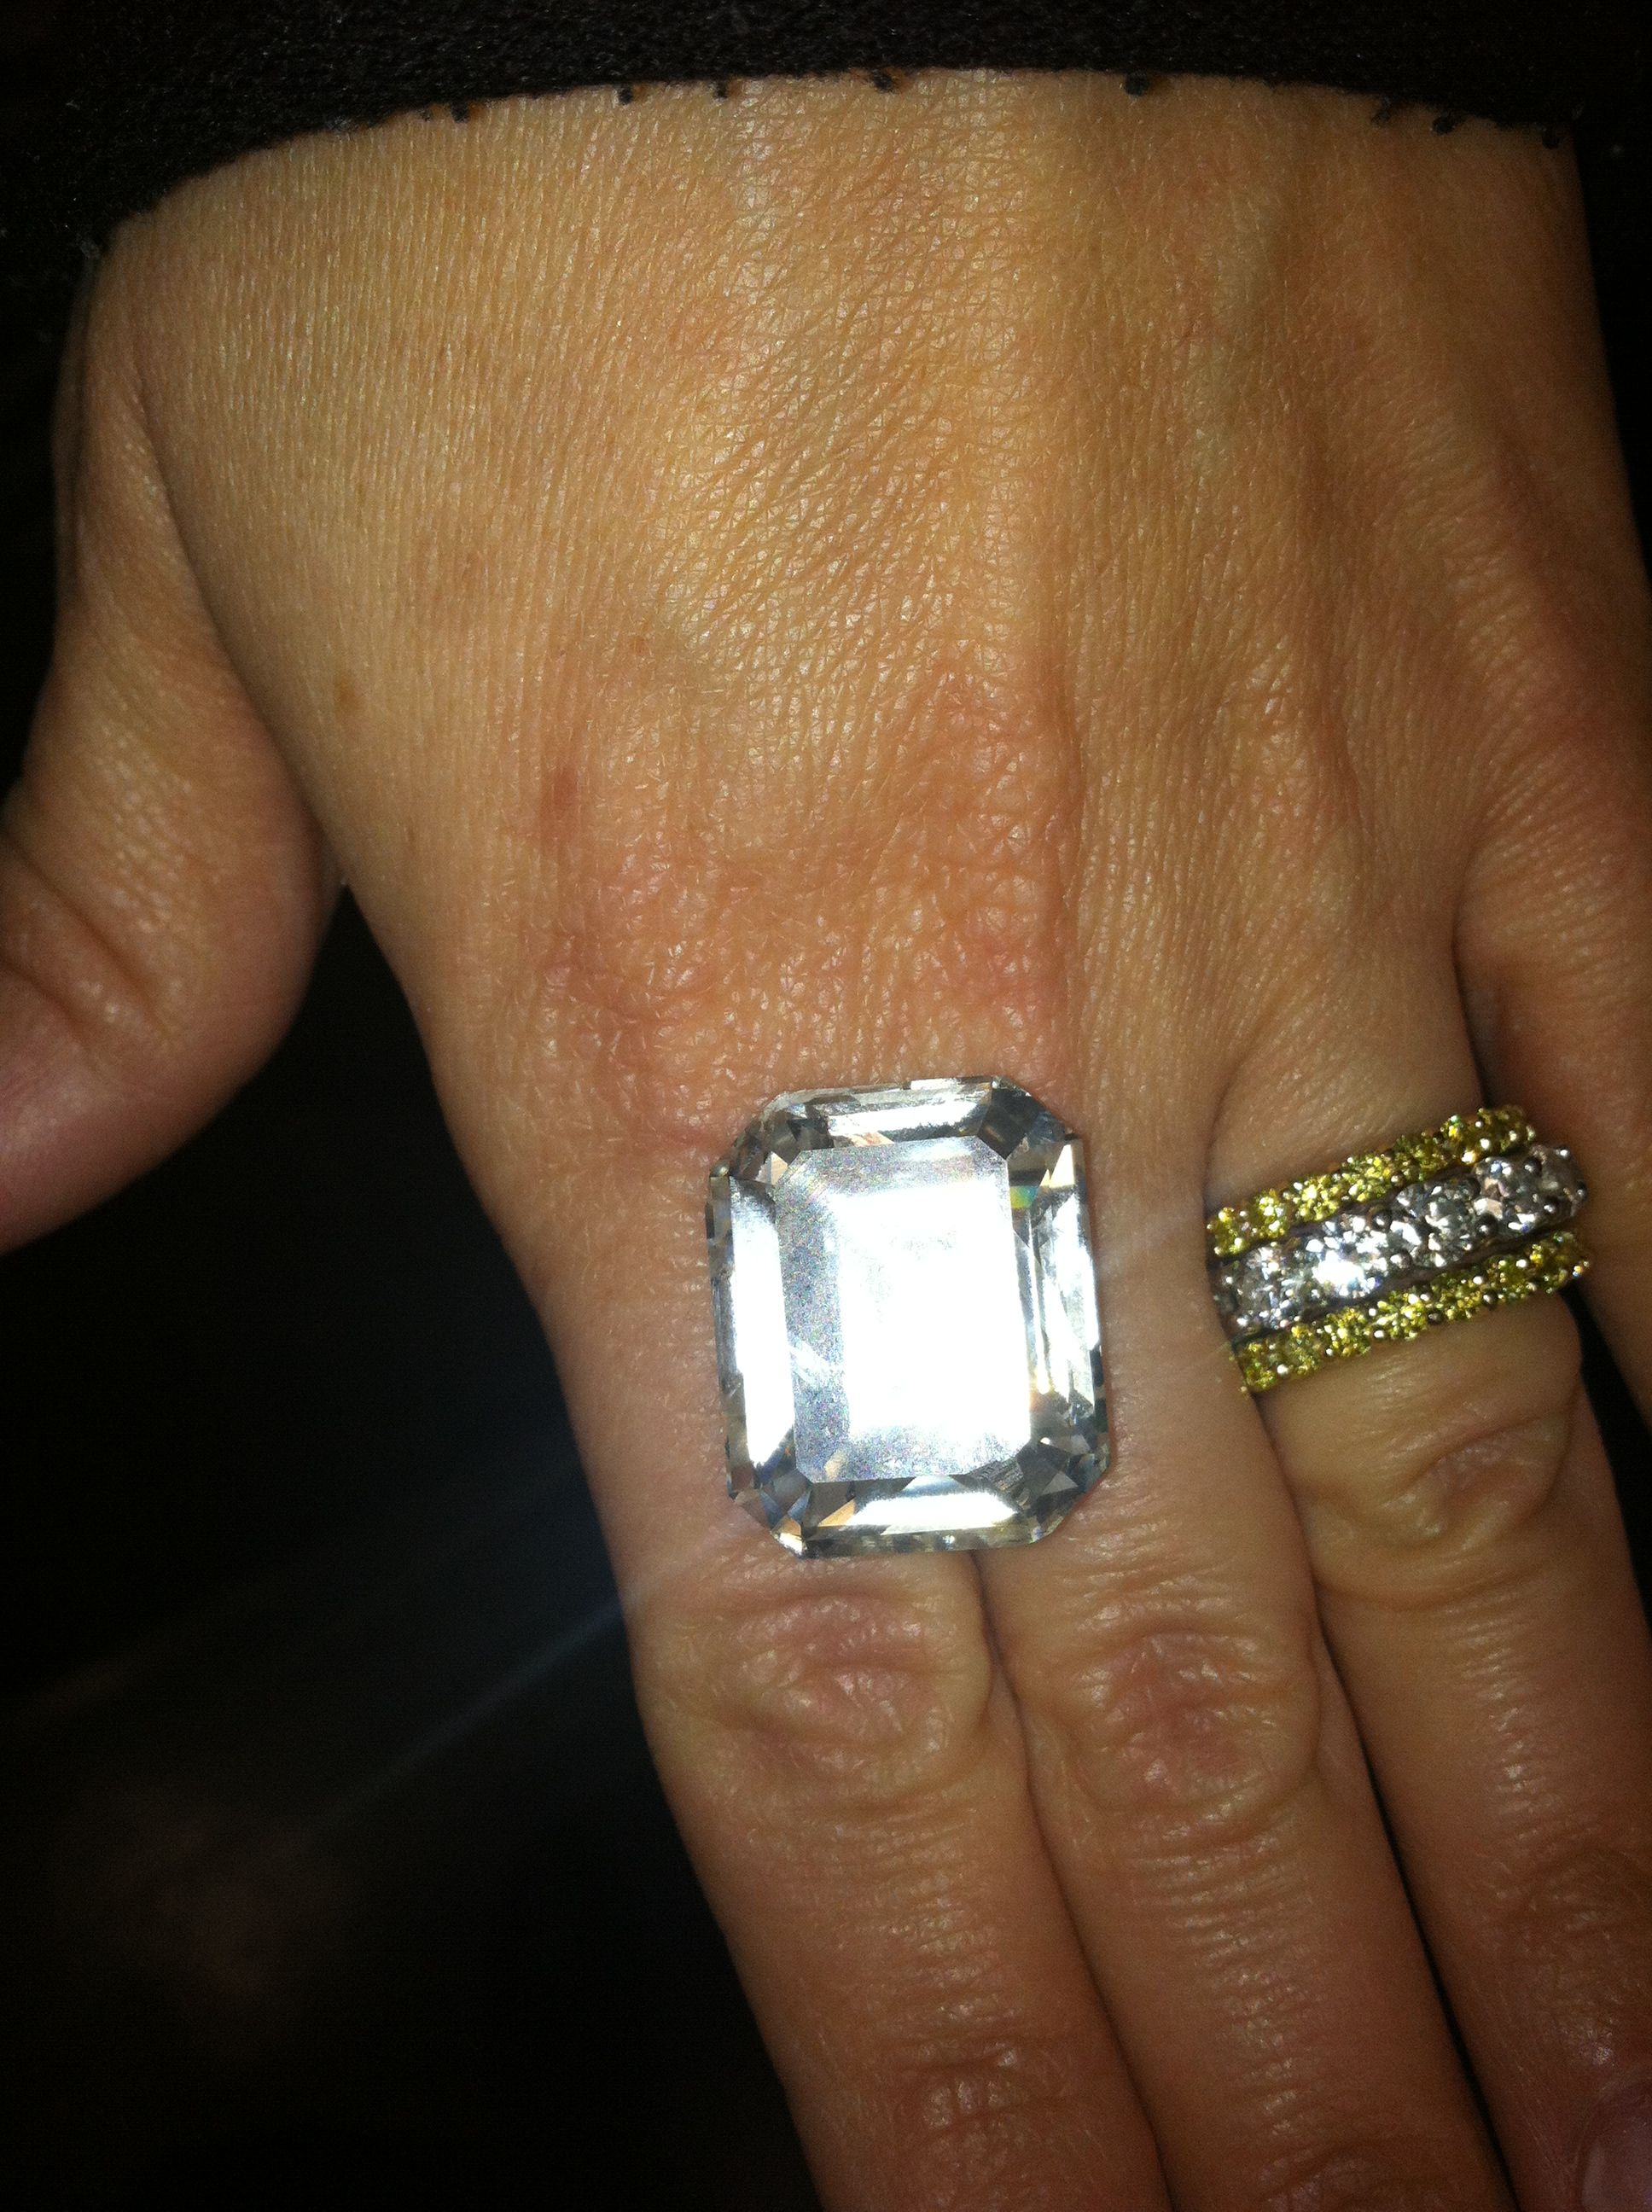 Now that is a big #diamond